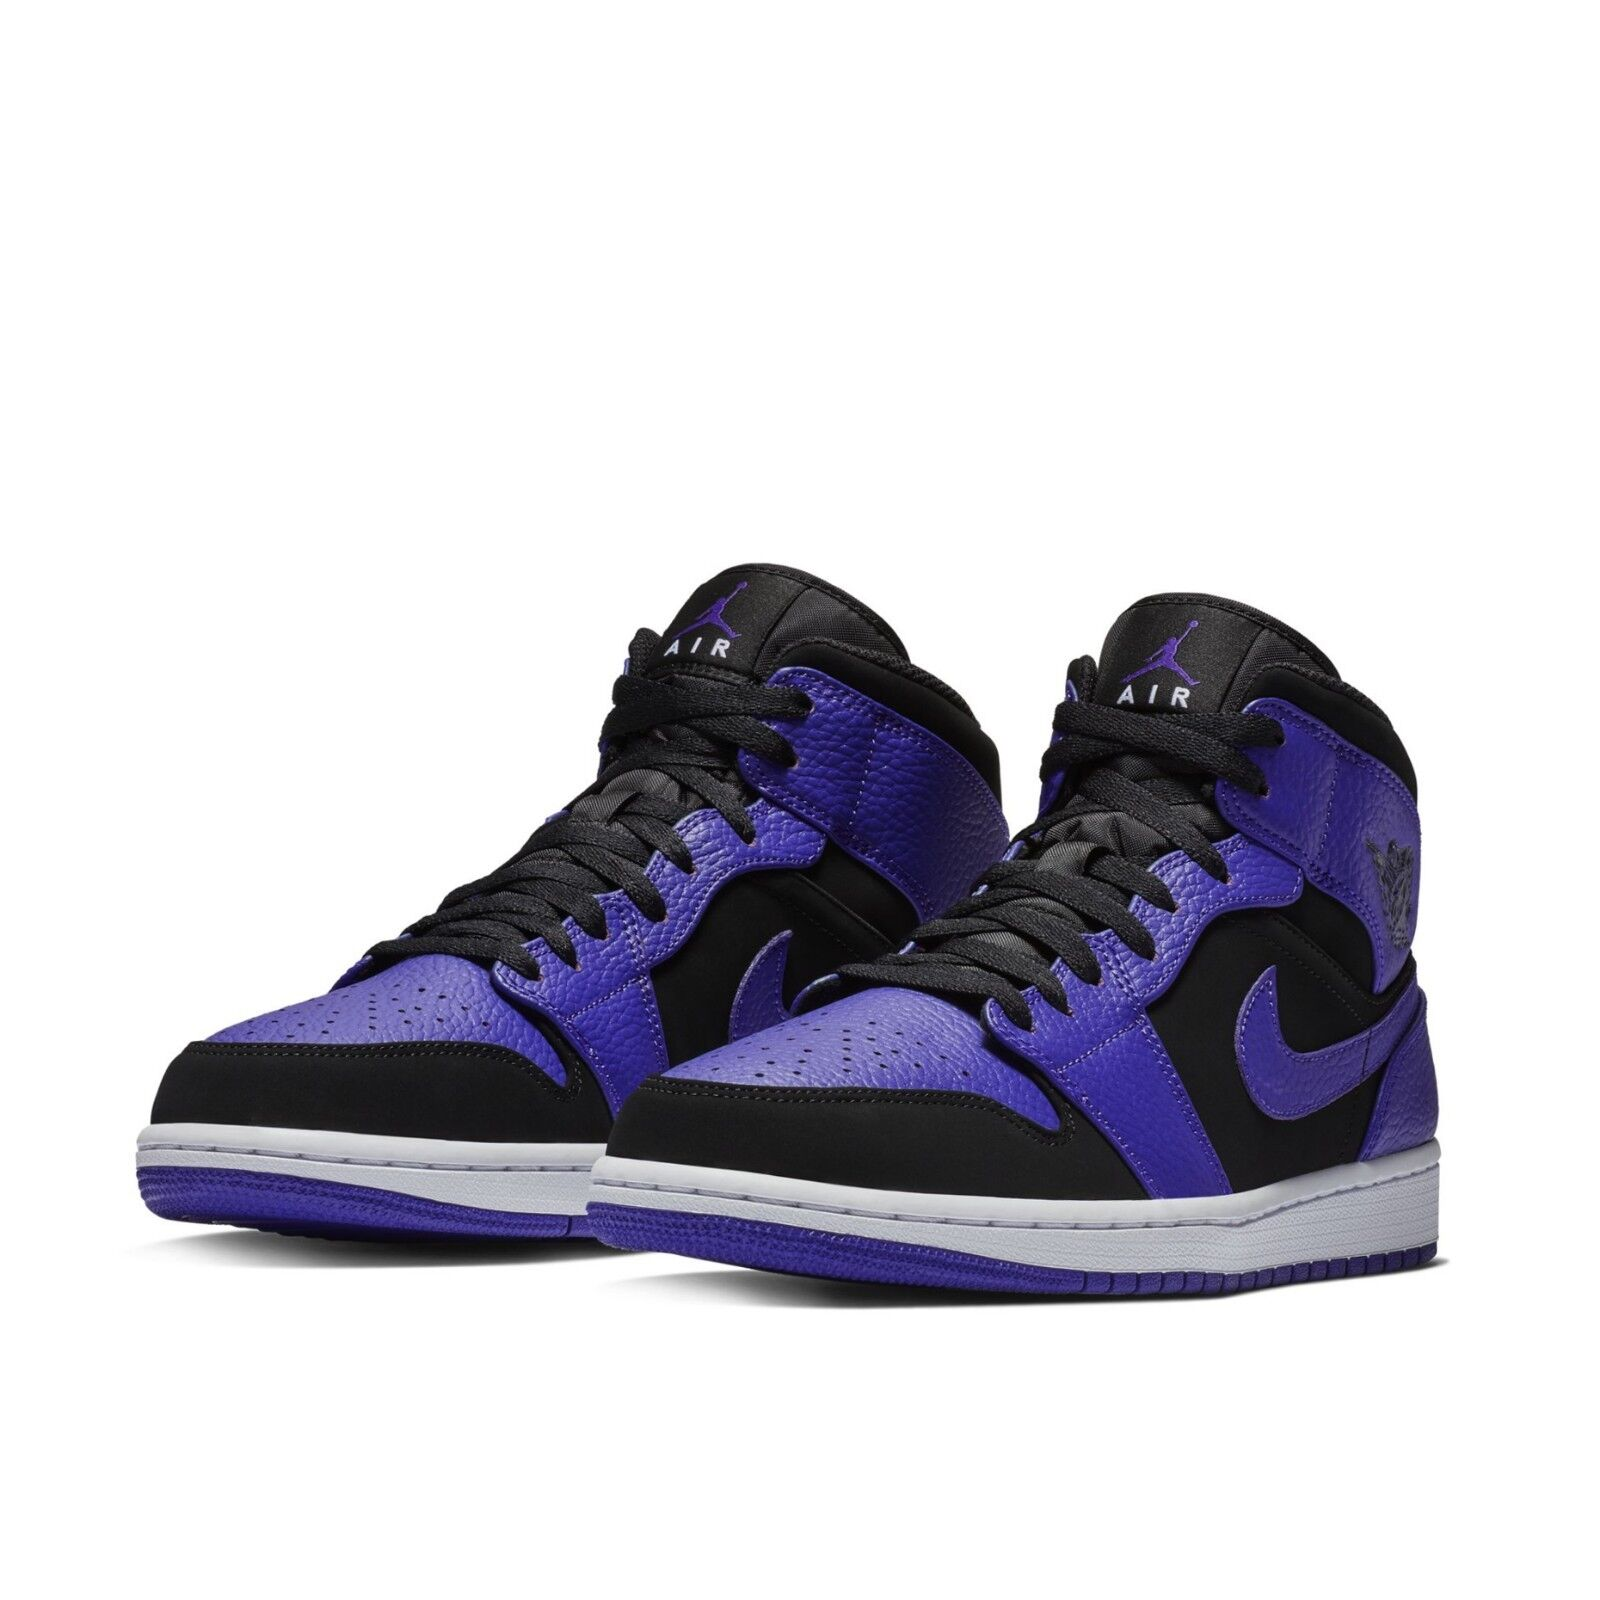 sports shoes 57bdb 2773e Details about Nike Mens Air Jordan 1 Mid Black Concord Purple Shoes  Sneakers AJ1 554724-051